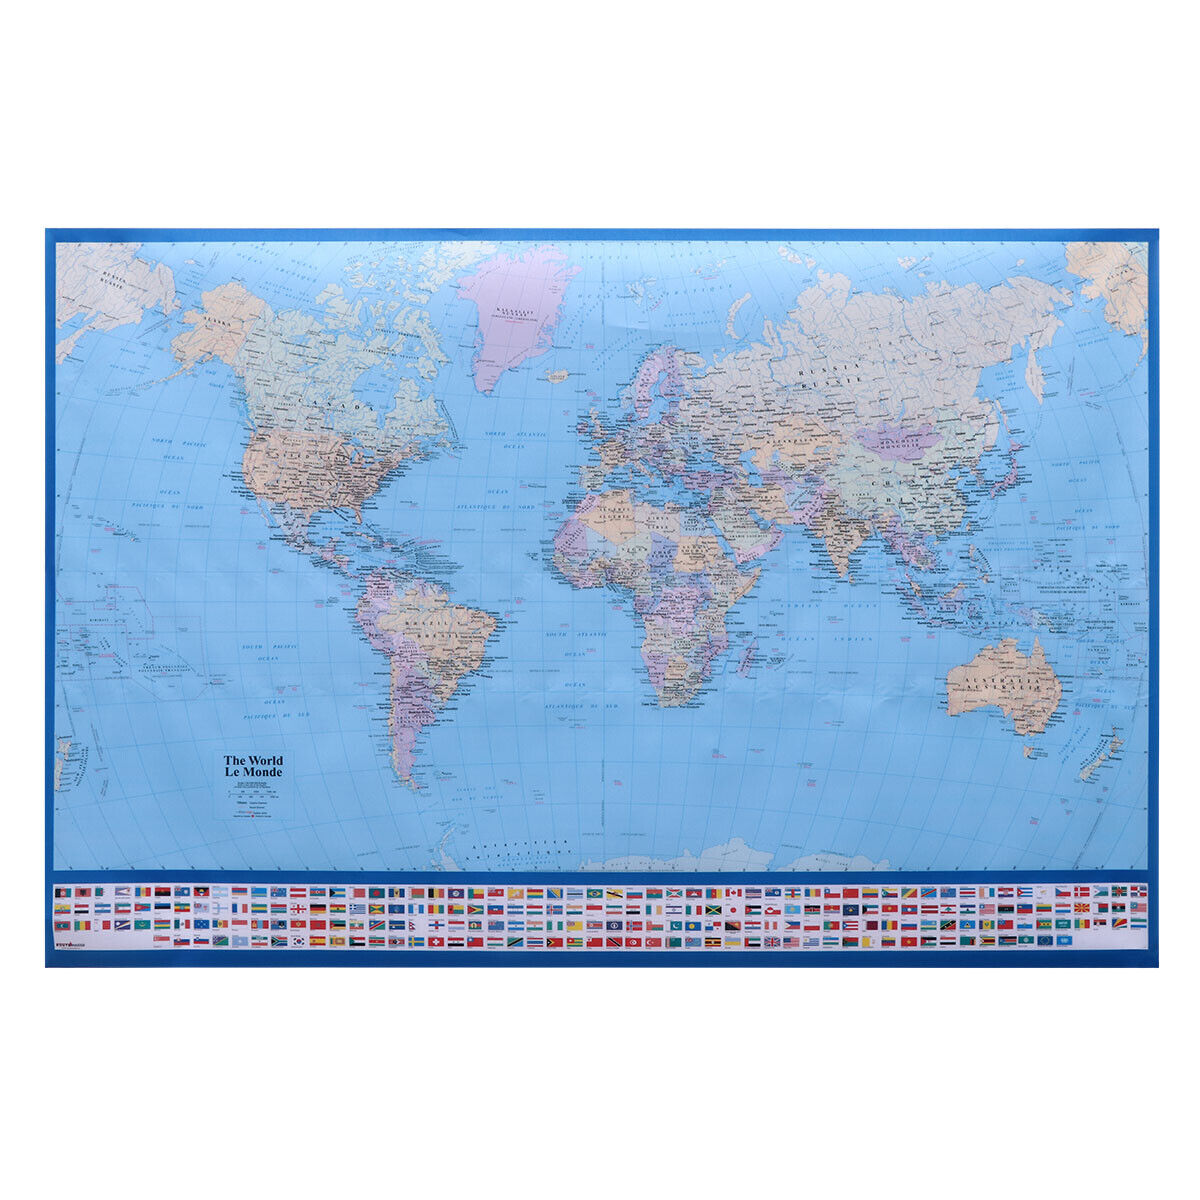 Details about World Map Giant Detailed Full Lamination Decorative Mural on wall maps of the world, giant map of ireland, giant world map of clouds, giant globe ball, giant map of usa, giant world map poster, giant map of germany, giant map of africa, giant map of japan, giant europe map, giant map of asia, maps that change your view of the world, giant canada map,